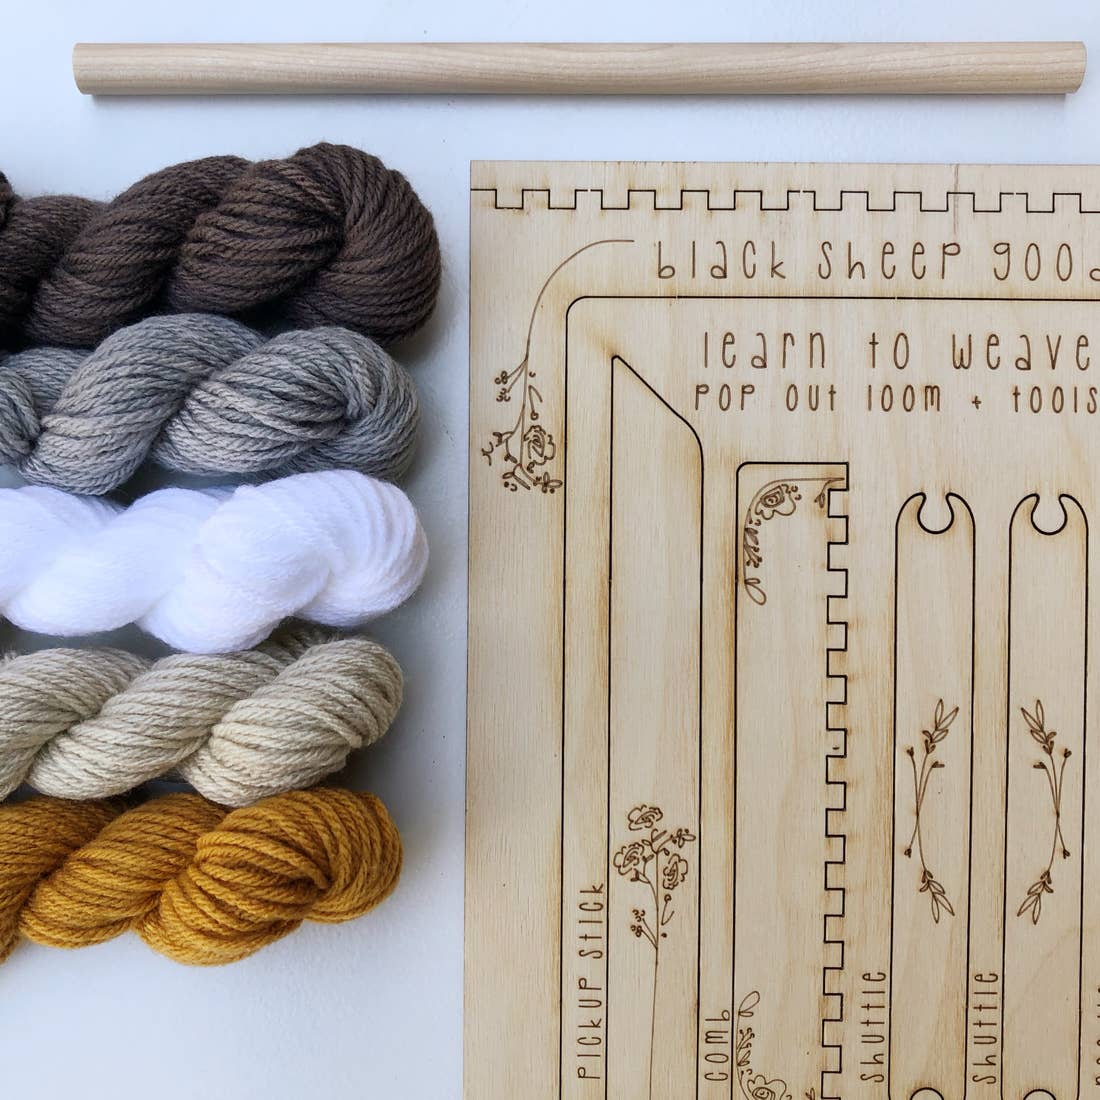 DIY Tapestry Weaving Kits by Black Sheep Goods - Honey by Black Sheep Goods - K. A. Artist Shop